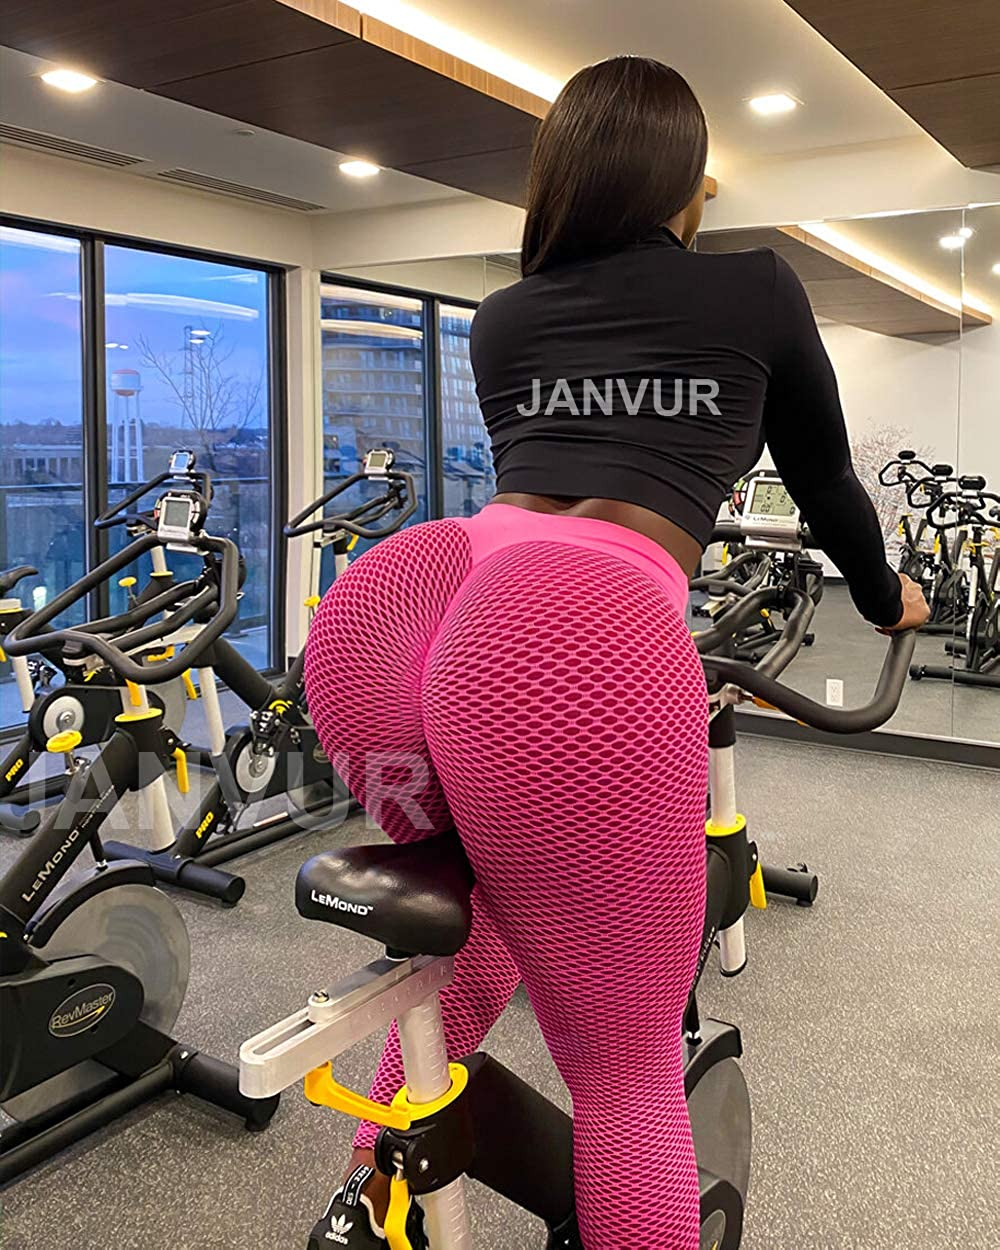 JANVUR Womens Anti/Cellulite Ruched Butt Lifting Leggings Booty Lifting Pants High Waist Textured Workout Tights